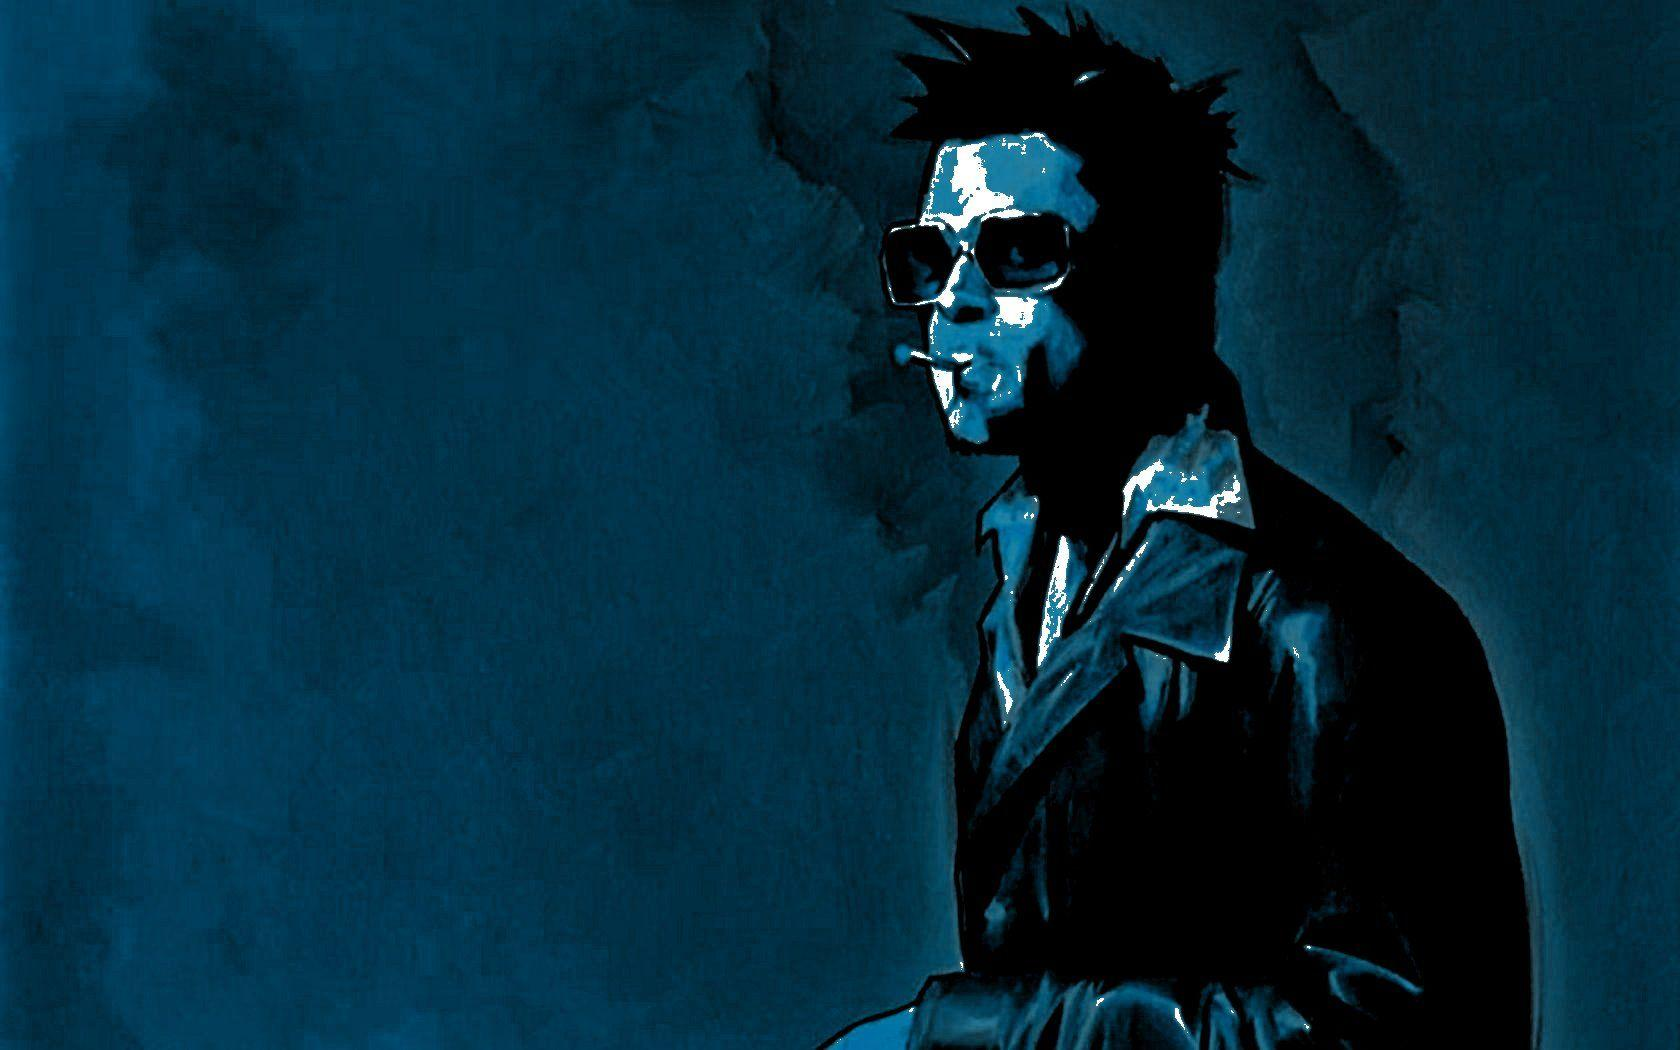 Fight Club Desktop Wallpapers, Fight Club Wallpapers | 38 HD ...